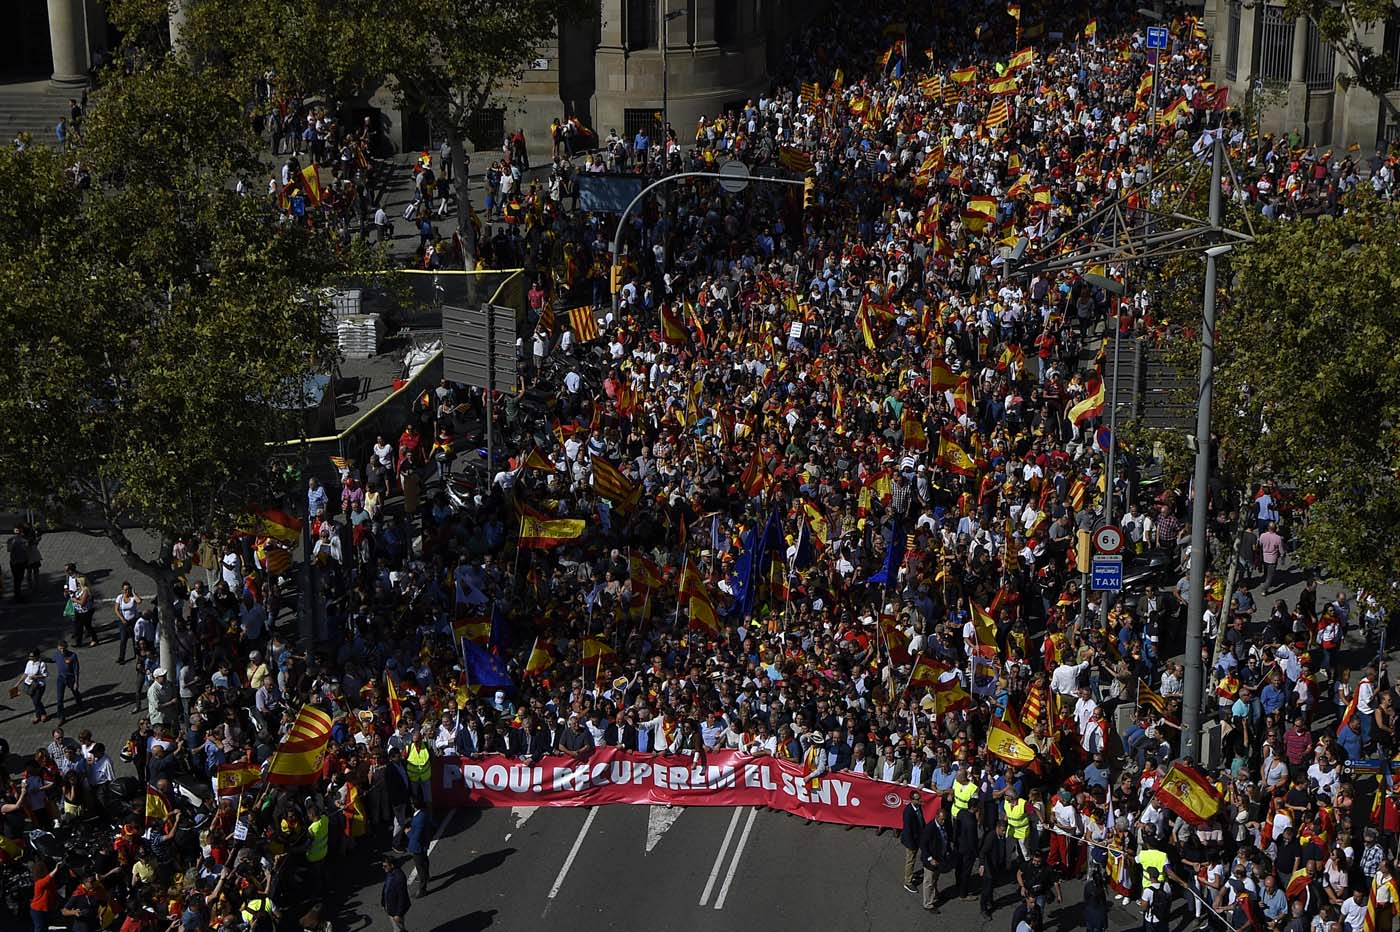 """Protester hold a banner reading in Catalan """"Enough, regain lucidity"""" during a demonstration called by """"Societat Civil Catalans"""" (Catalan Civil Society) to support the unity of Spain on October 8, 2017 in Barcelona. Spain braced for more protests despite tentative signs that the sides may be seeking to defuse the crisis after Madrid offered a first apology to Catalans injured by police during their outlawed independence vote. / AFP PHOTO / LLUIS GENE"""